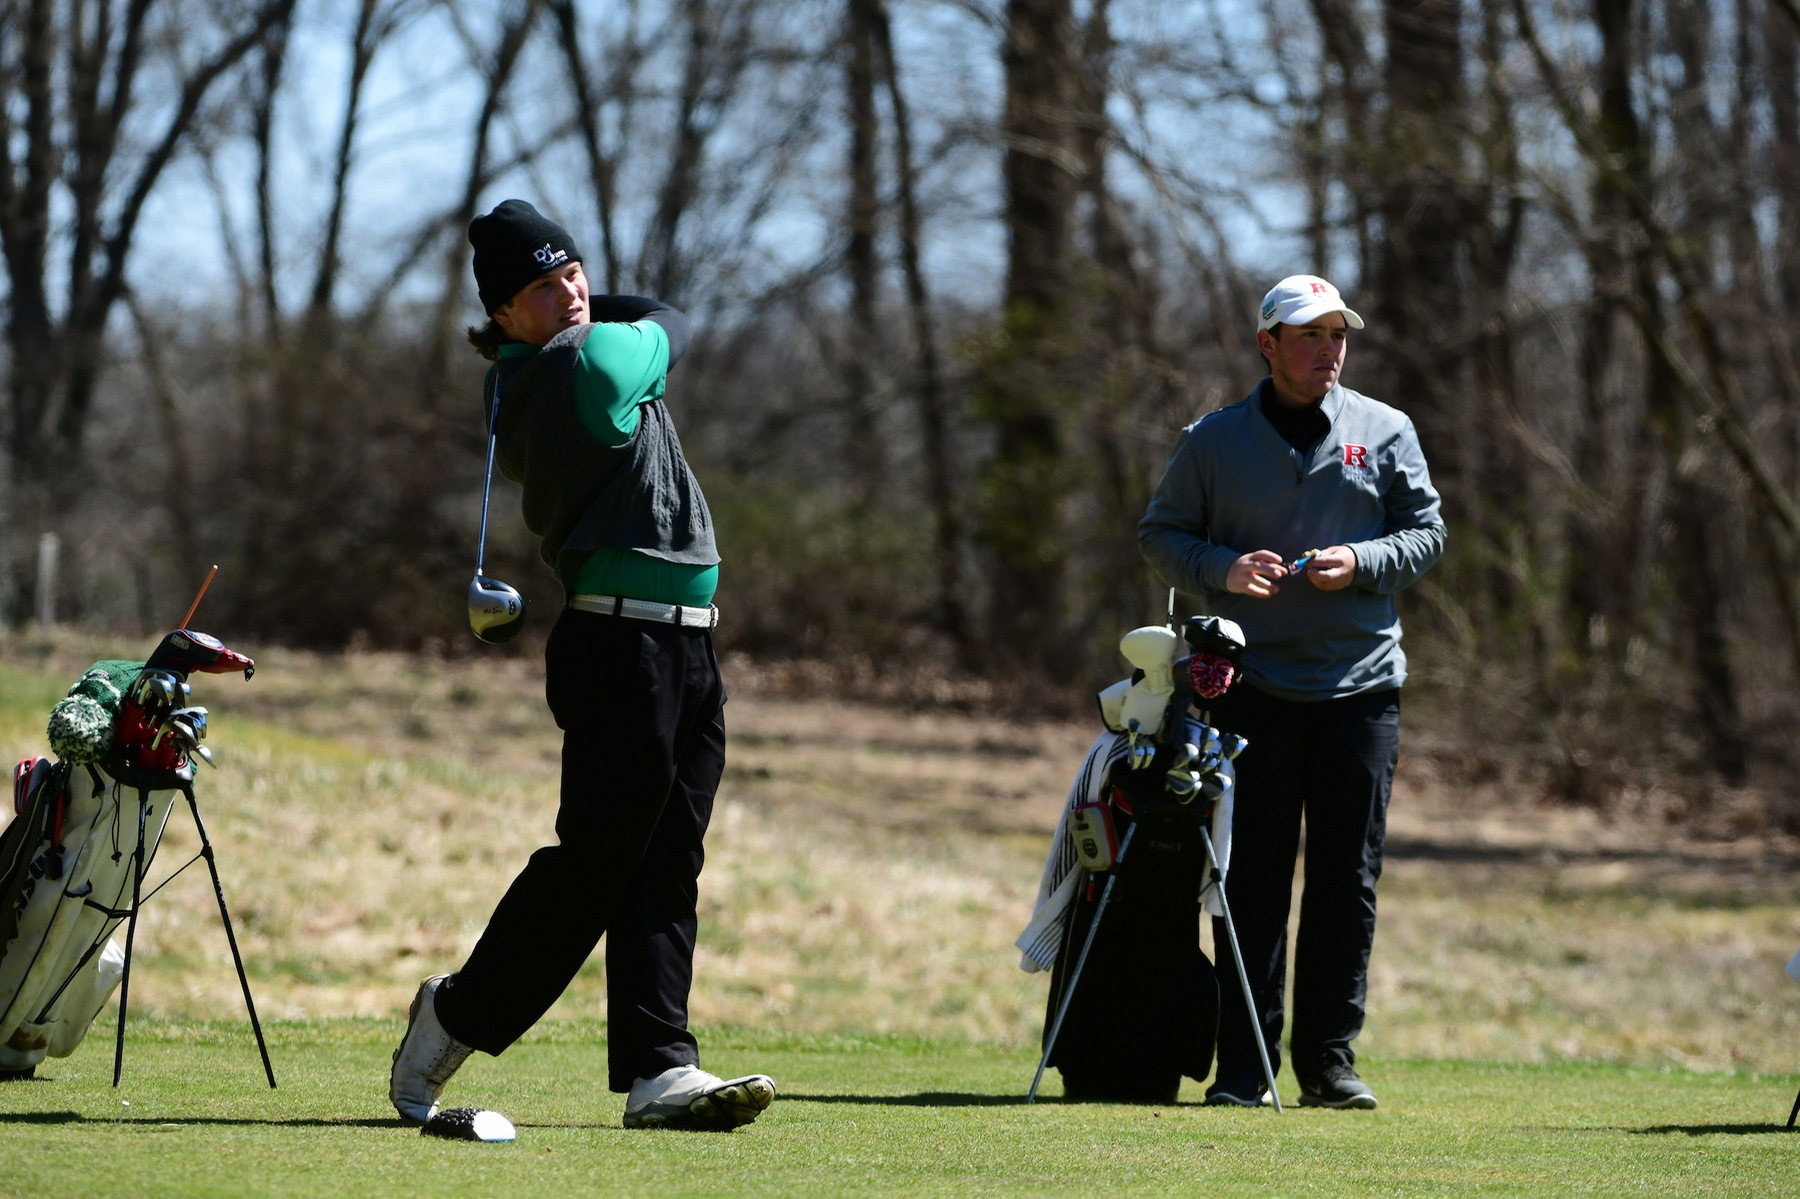 Shur Leads Mustangs on Final Day of McDaniel Spring Invite